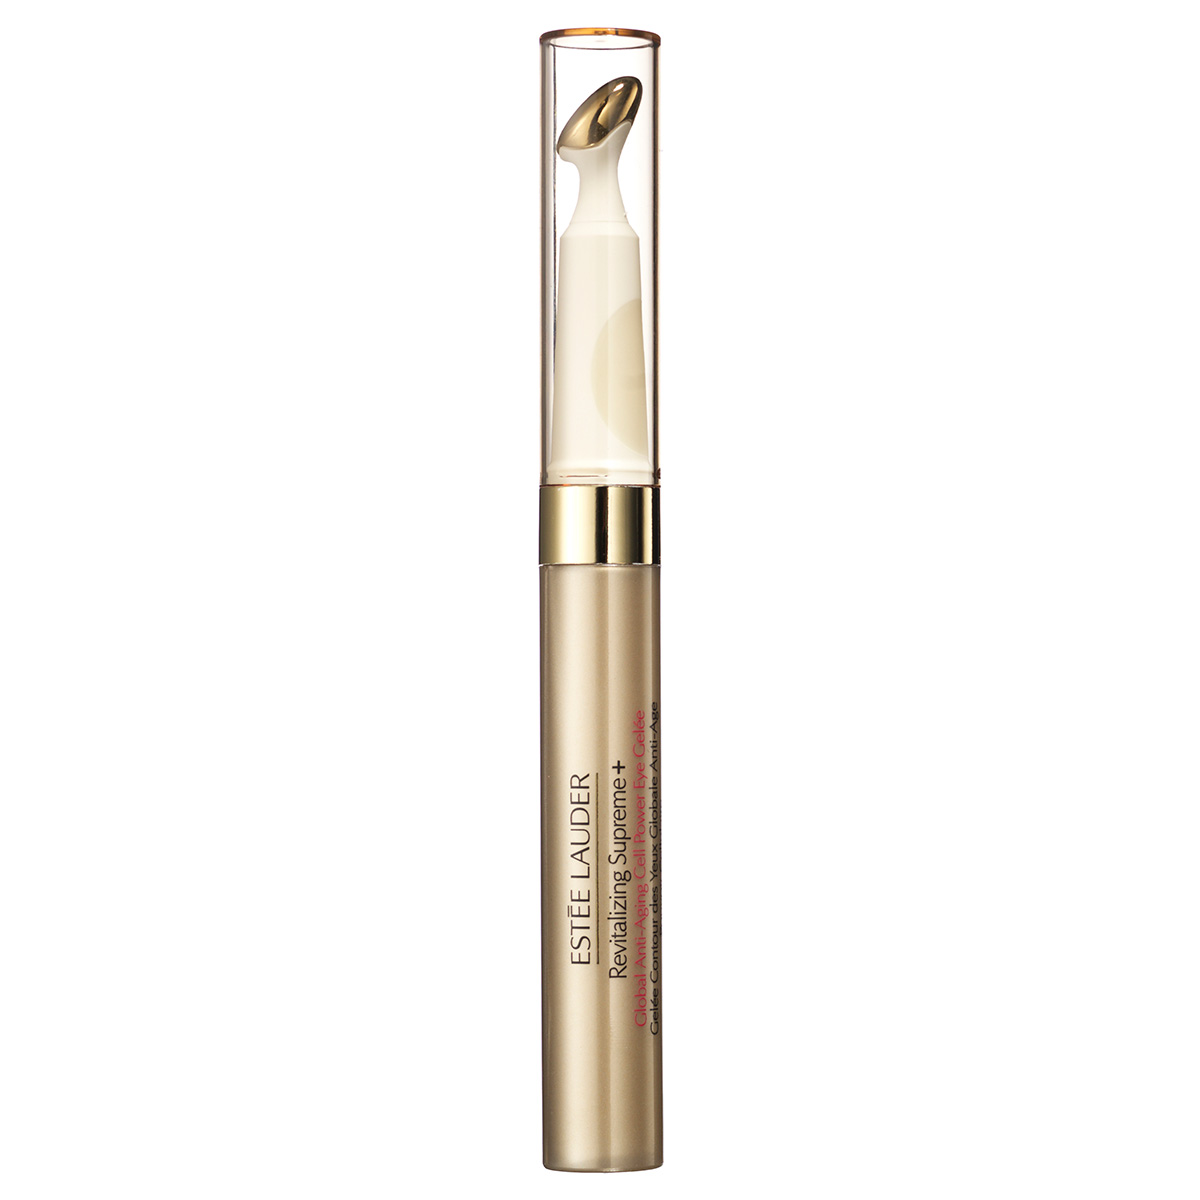 Estée Lauder Revitalizing Supreme+ Anti-aging Eye Gelee - 8 ml